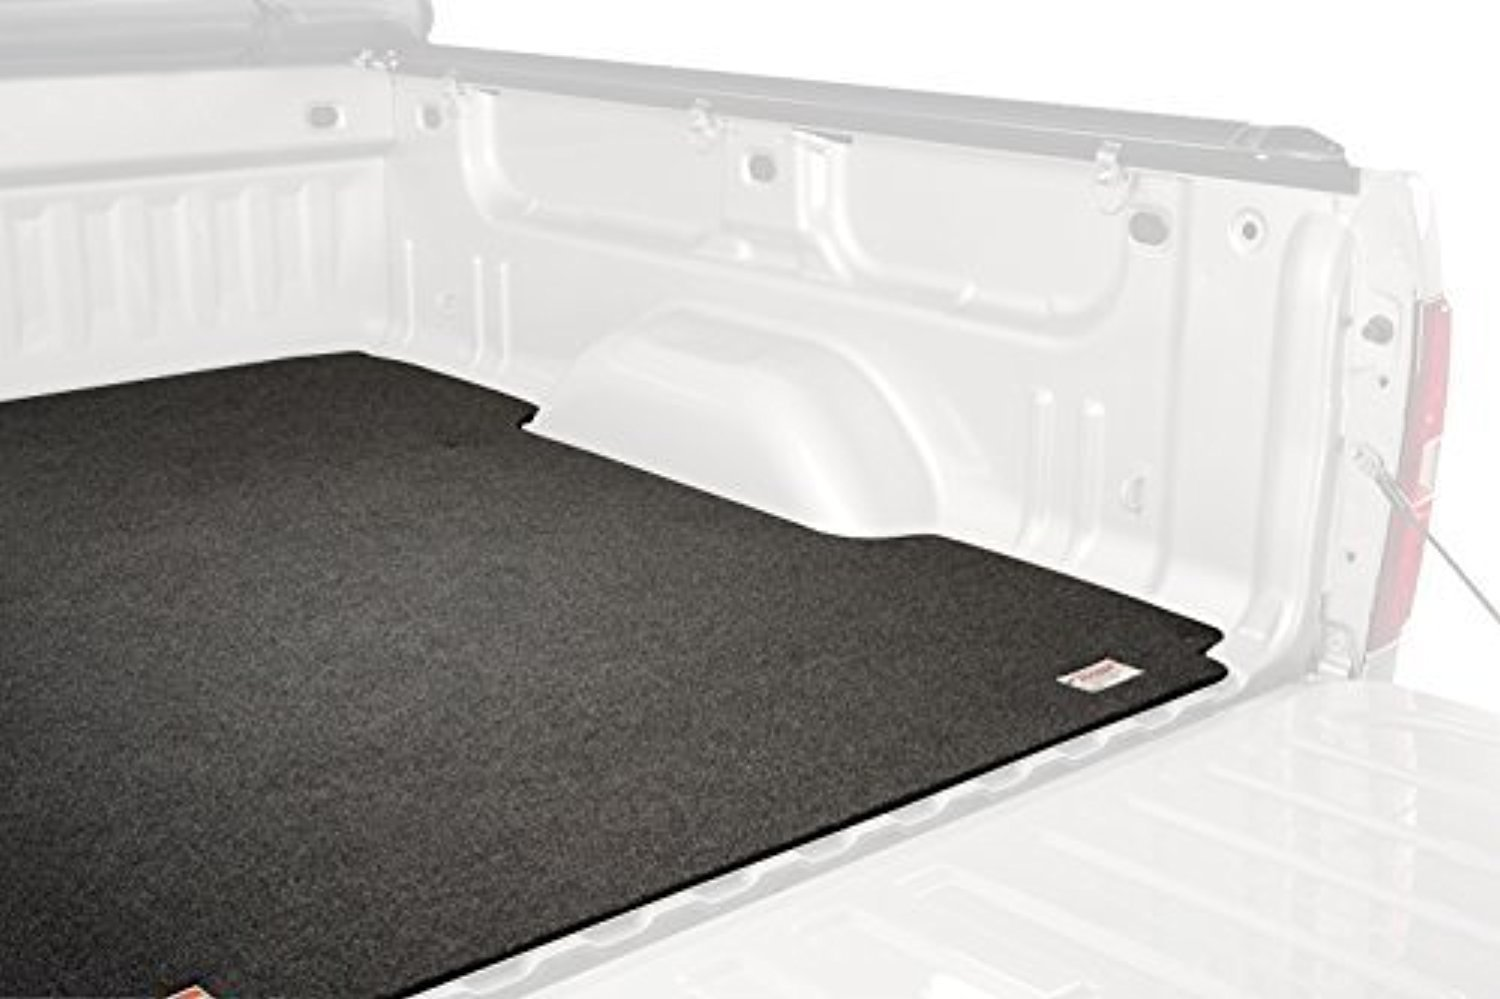 Access 25020349 Bed Mat by Access Covers 4333094429